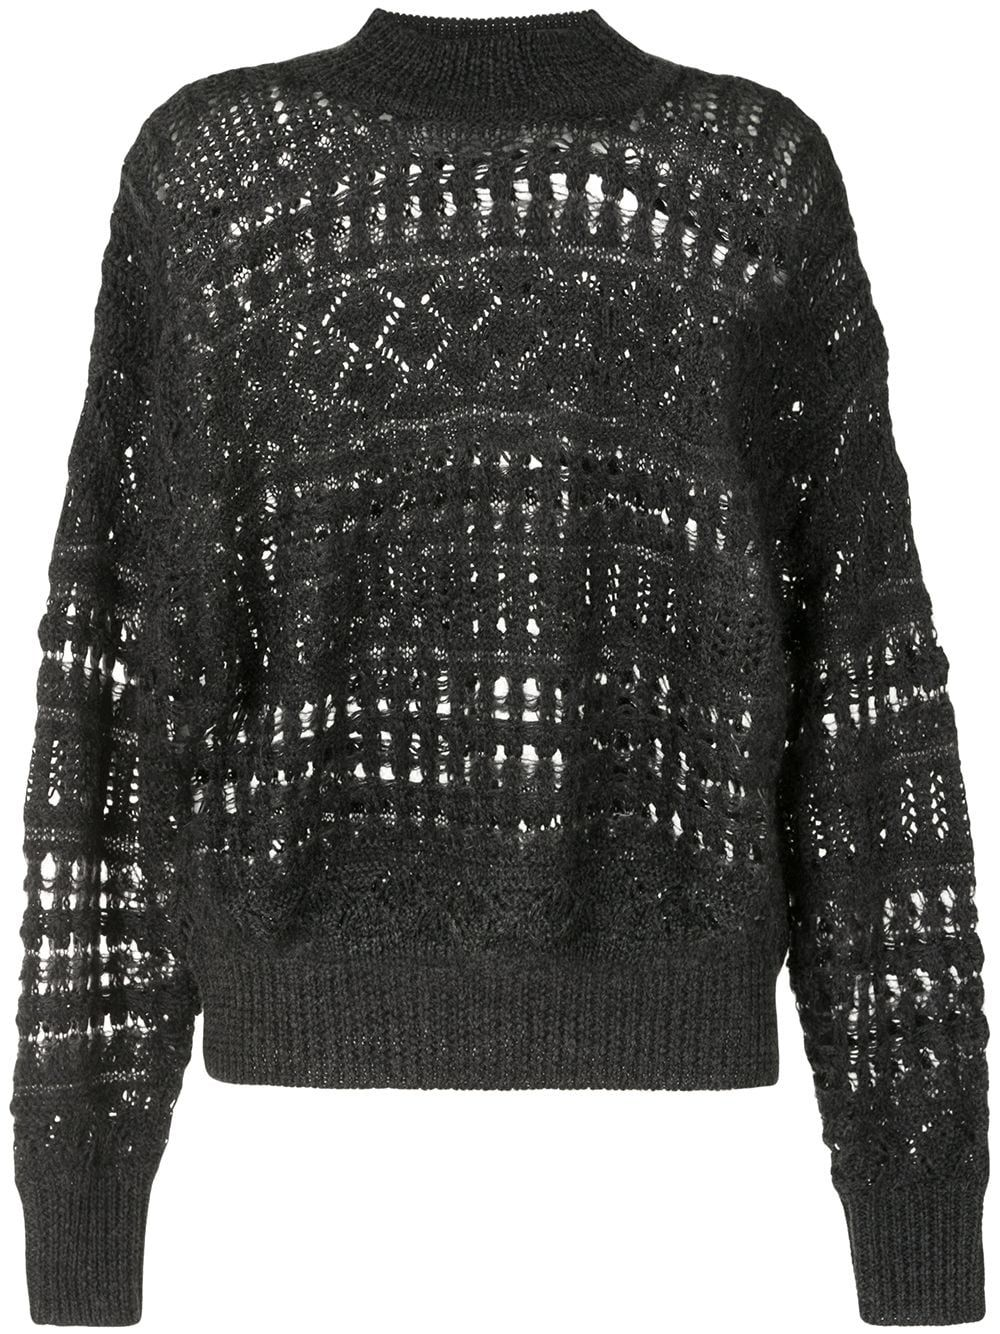 Anthracite black wool-mohair blend Pernille open-knit jumper from ISABEL MARANT ÉTOILE featuring ribbed-knit edge, roll neck, drop shoulder, long sleeves and straight hem.